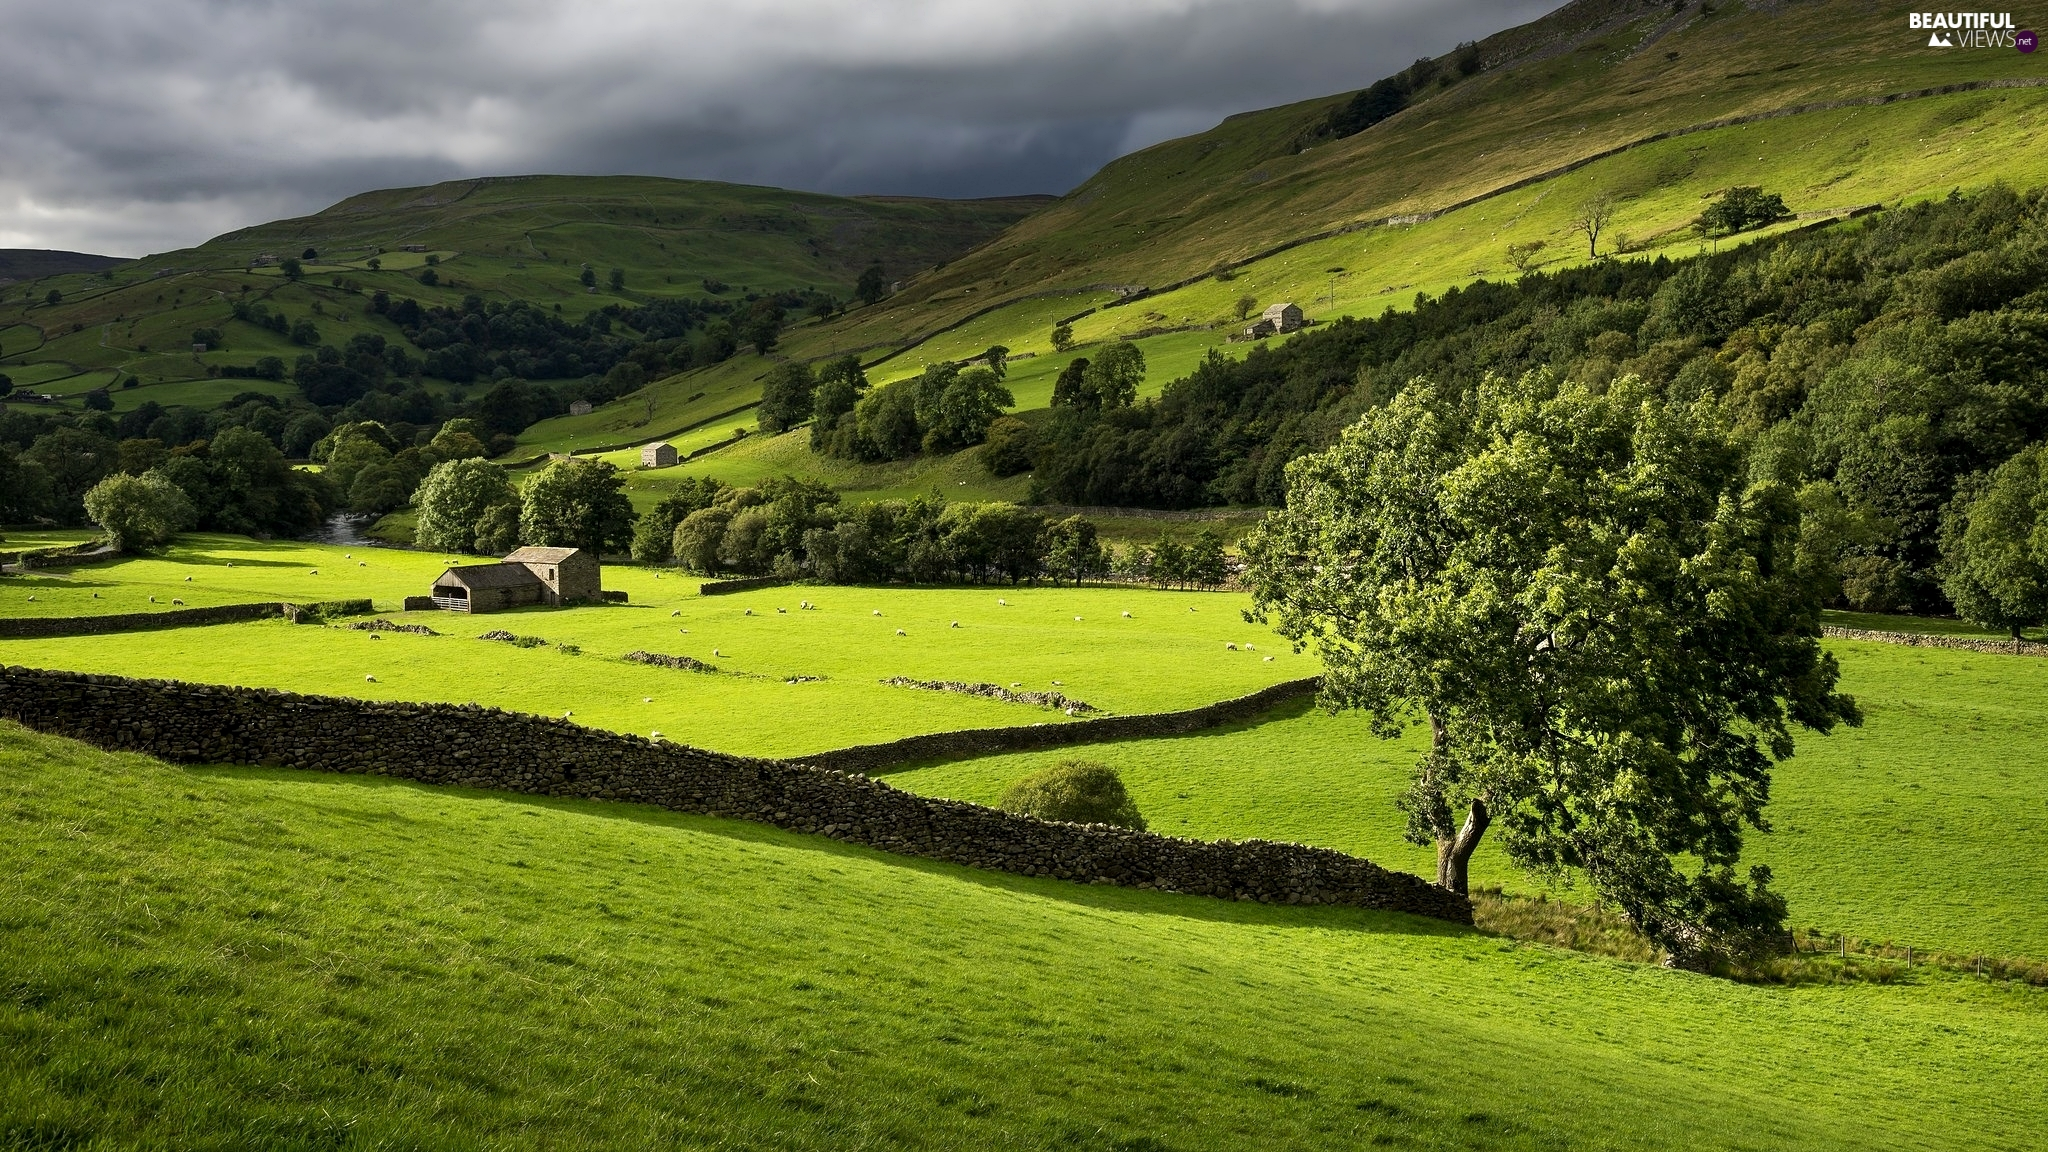 Mountains, Swaledale Valley, trees, Meadow, Stone, Sheep, buildings, England, Yorkshire Dales National Park, walls, viewes